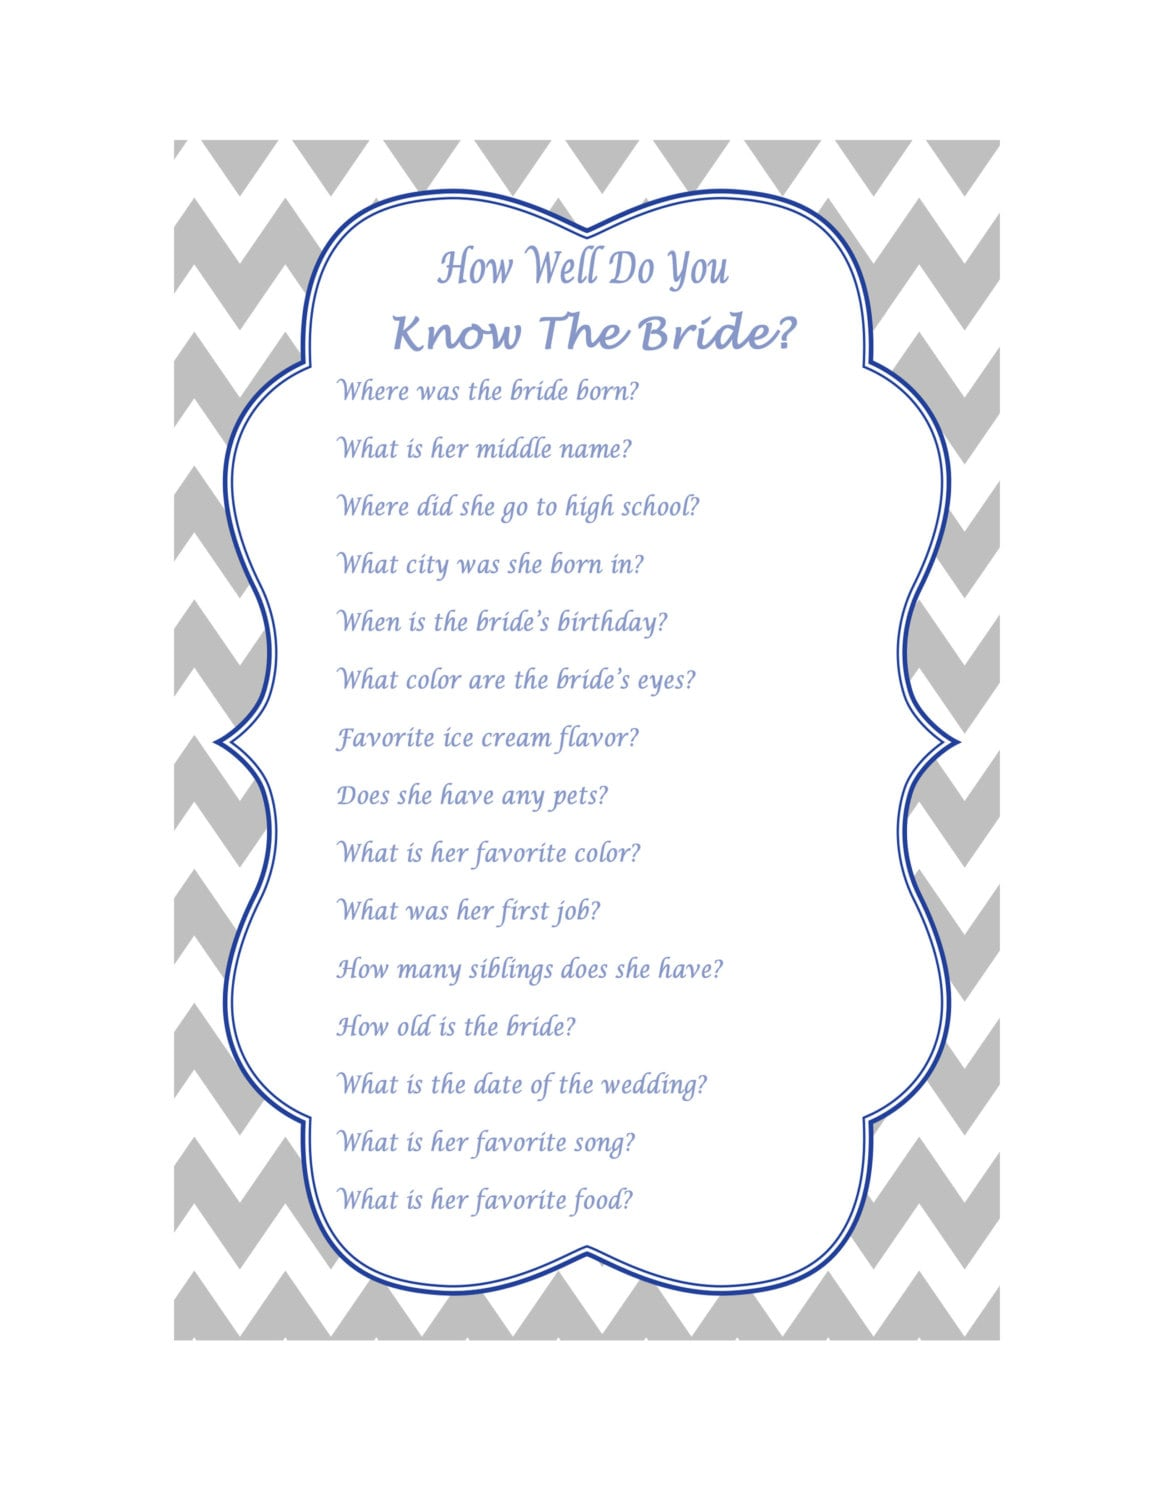 How Well Do You Know The Bride Wedding Quiz Wedding Trivia